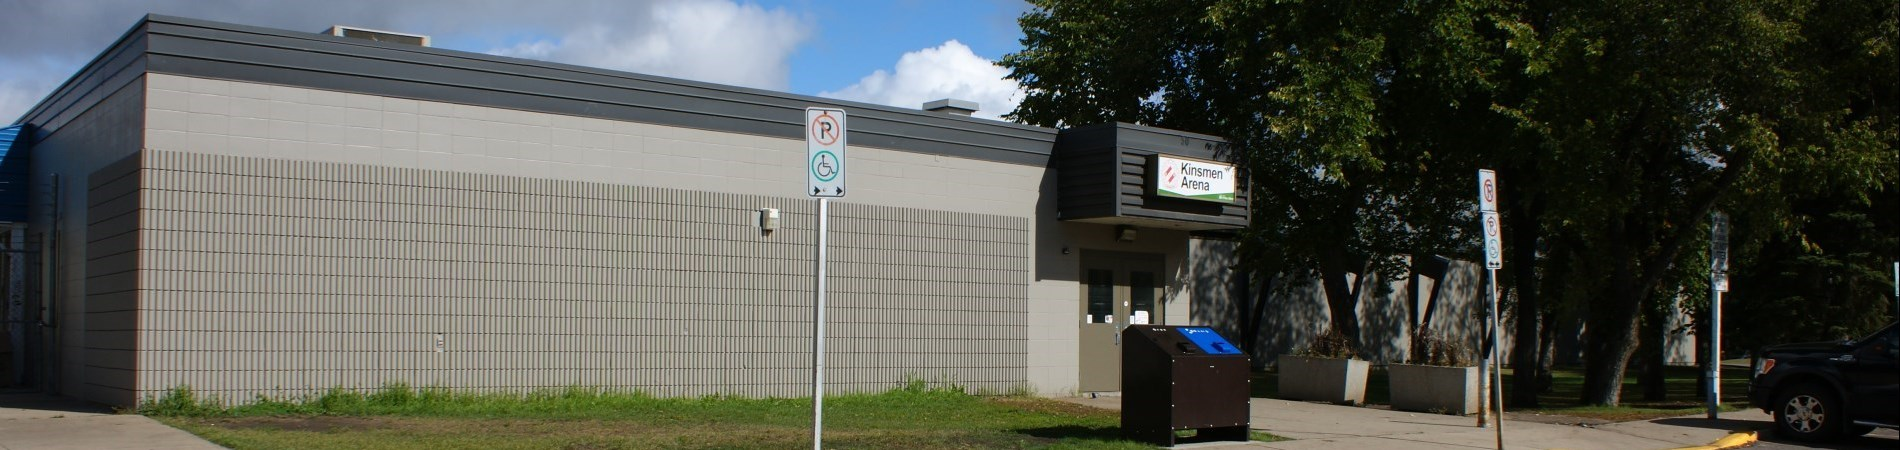 Front view of Kinsmen Arena